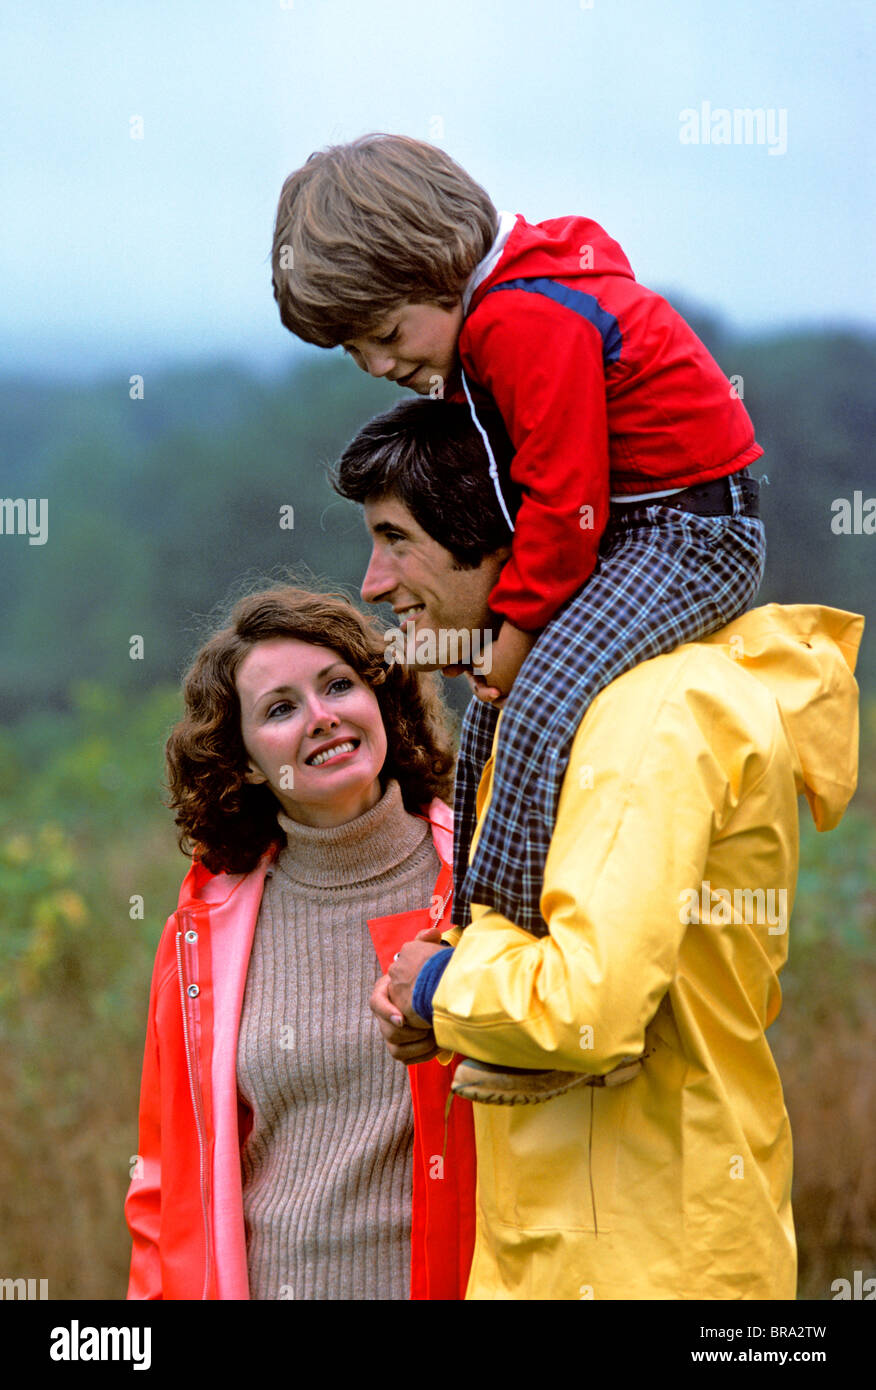 1970 1970s RETRO PARENTS MOTHER FATHER HOLDING SON ON SHOULDERS SMILING FAMILY OUTDOORS - Stock Image